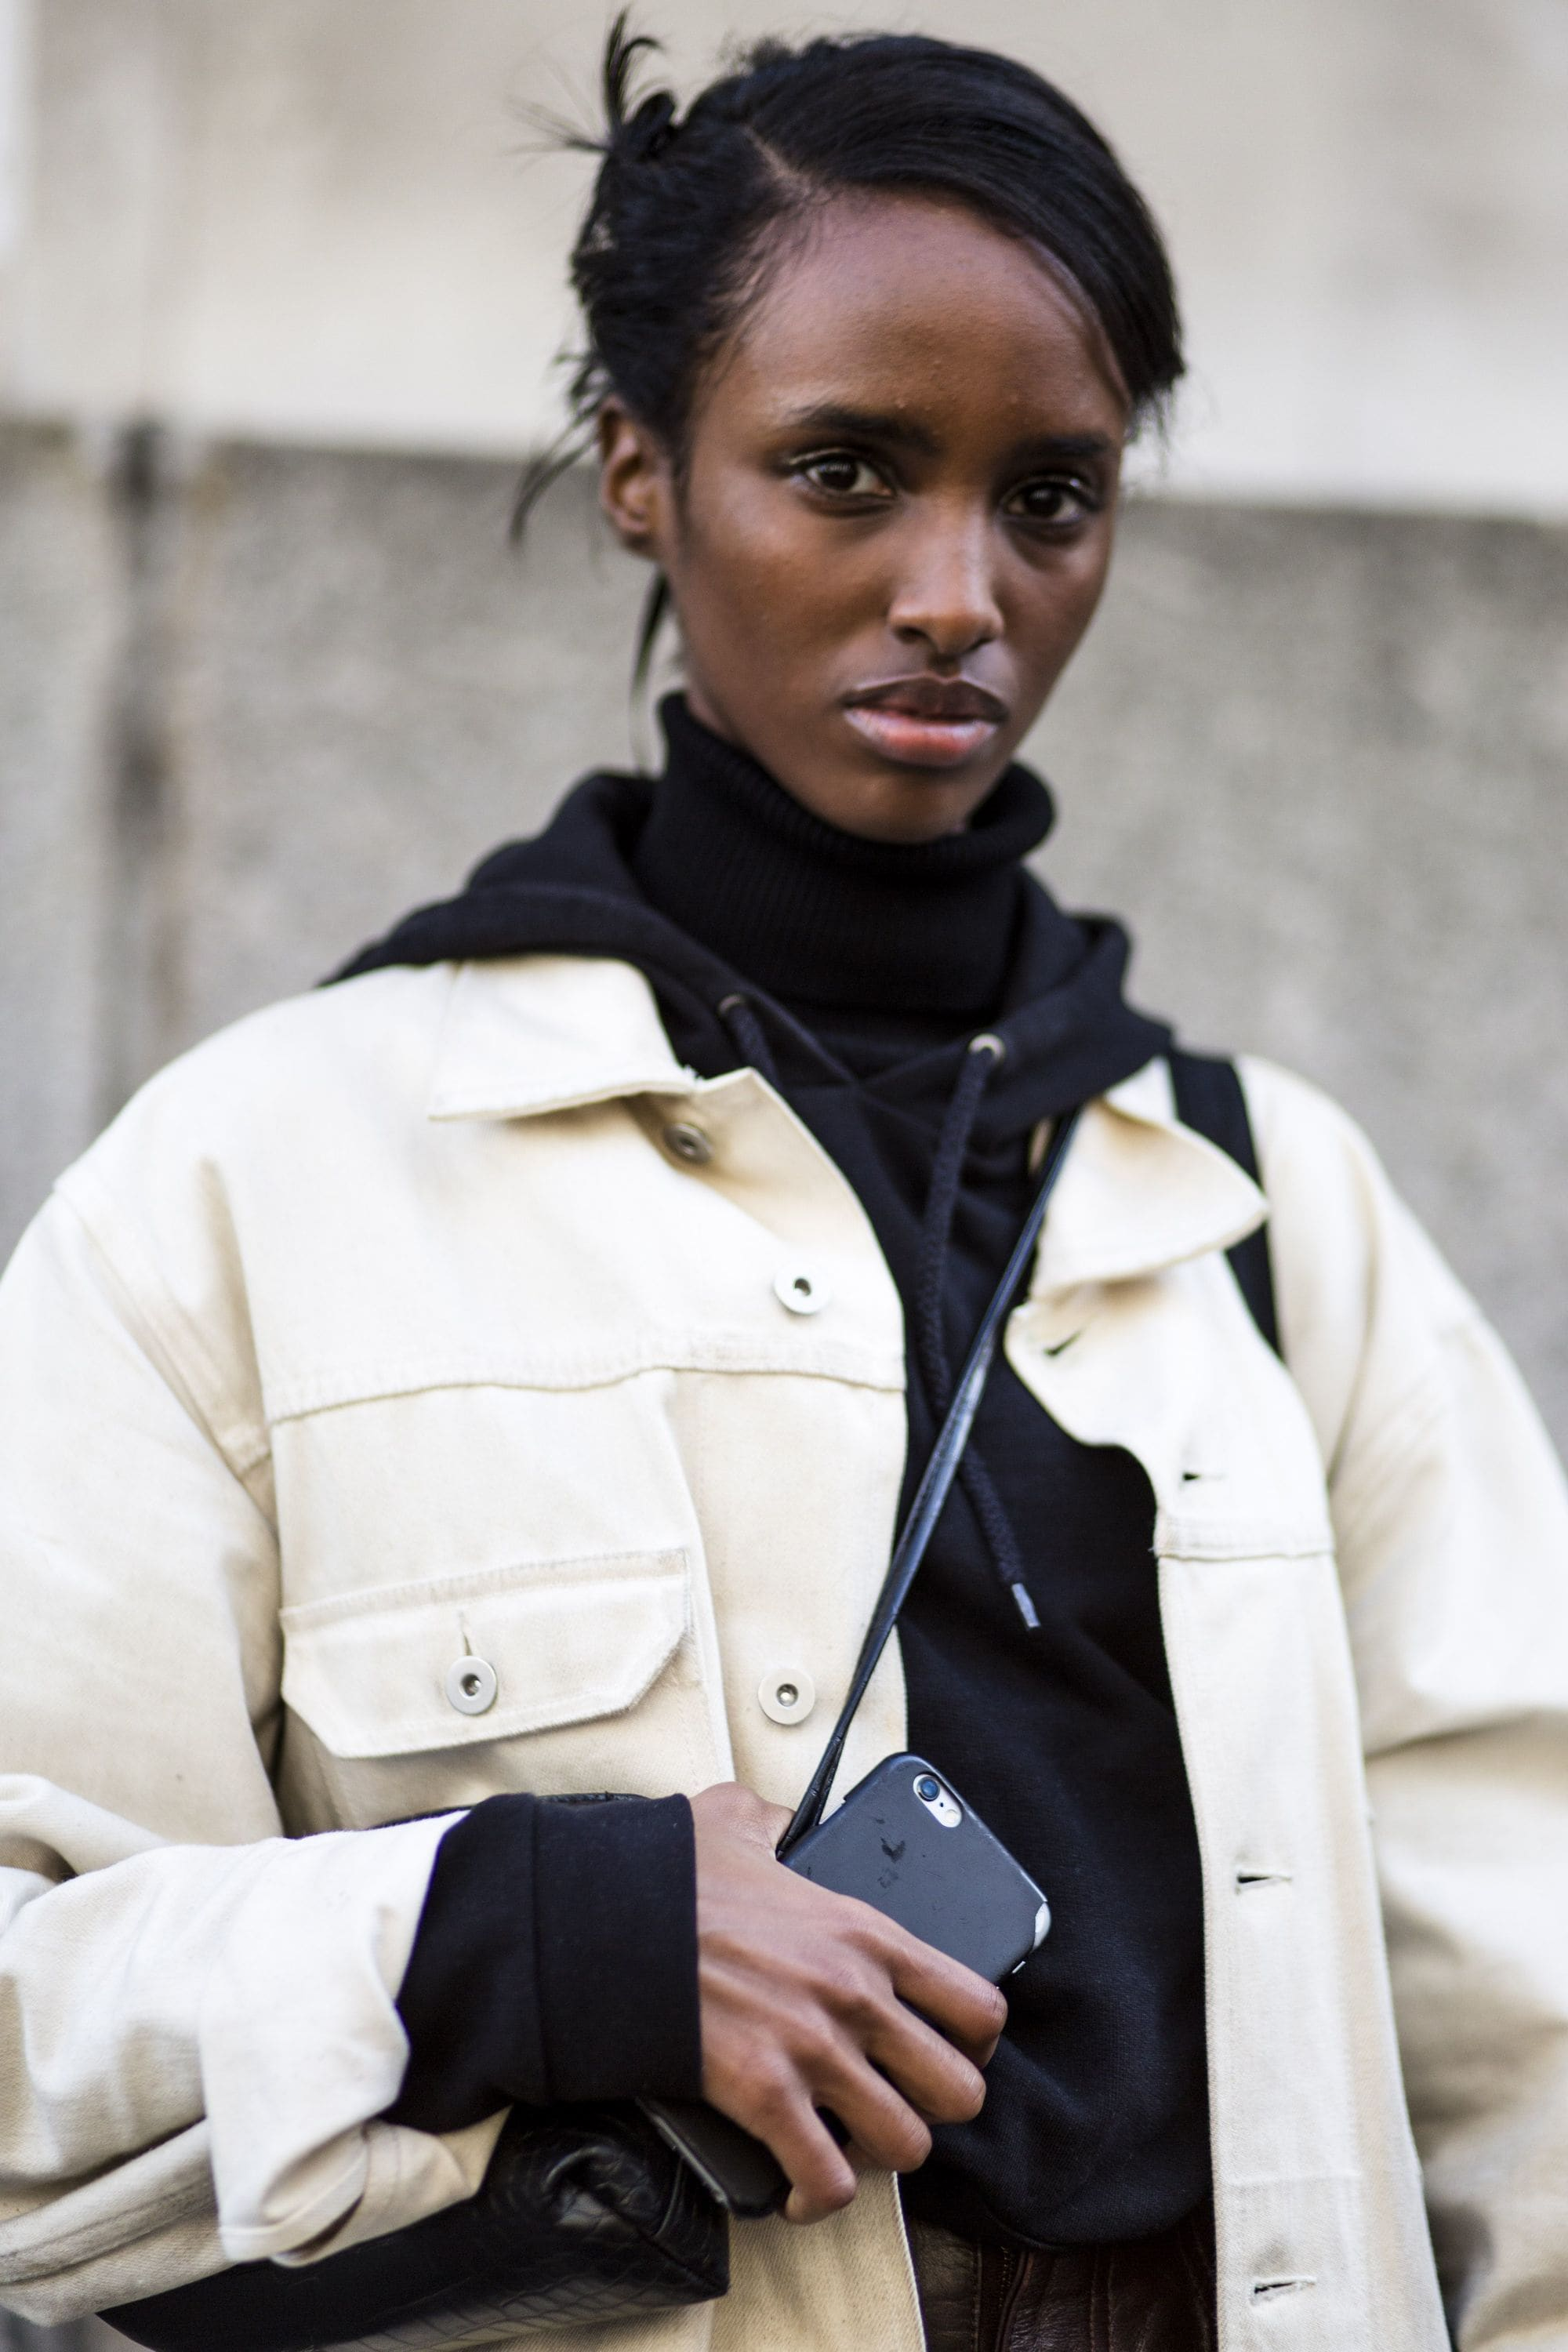 close up shot of woman with low side part hairstyle, wearing all black and white jacket at London fashion week 2018